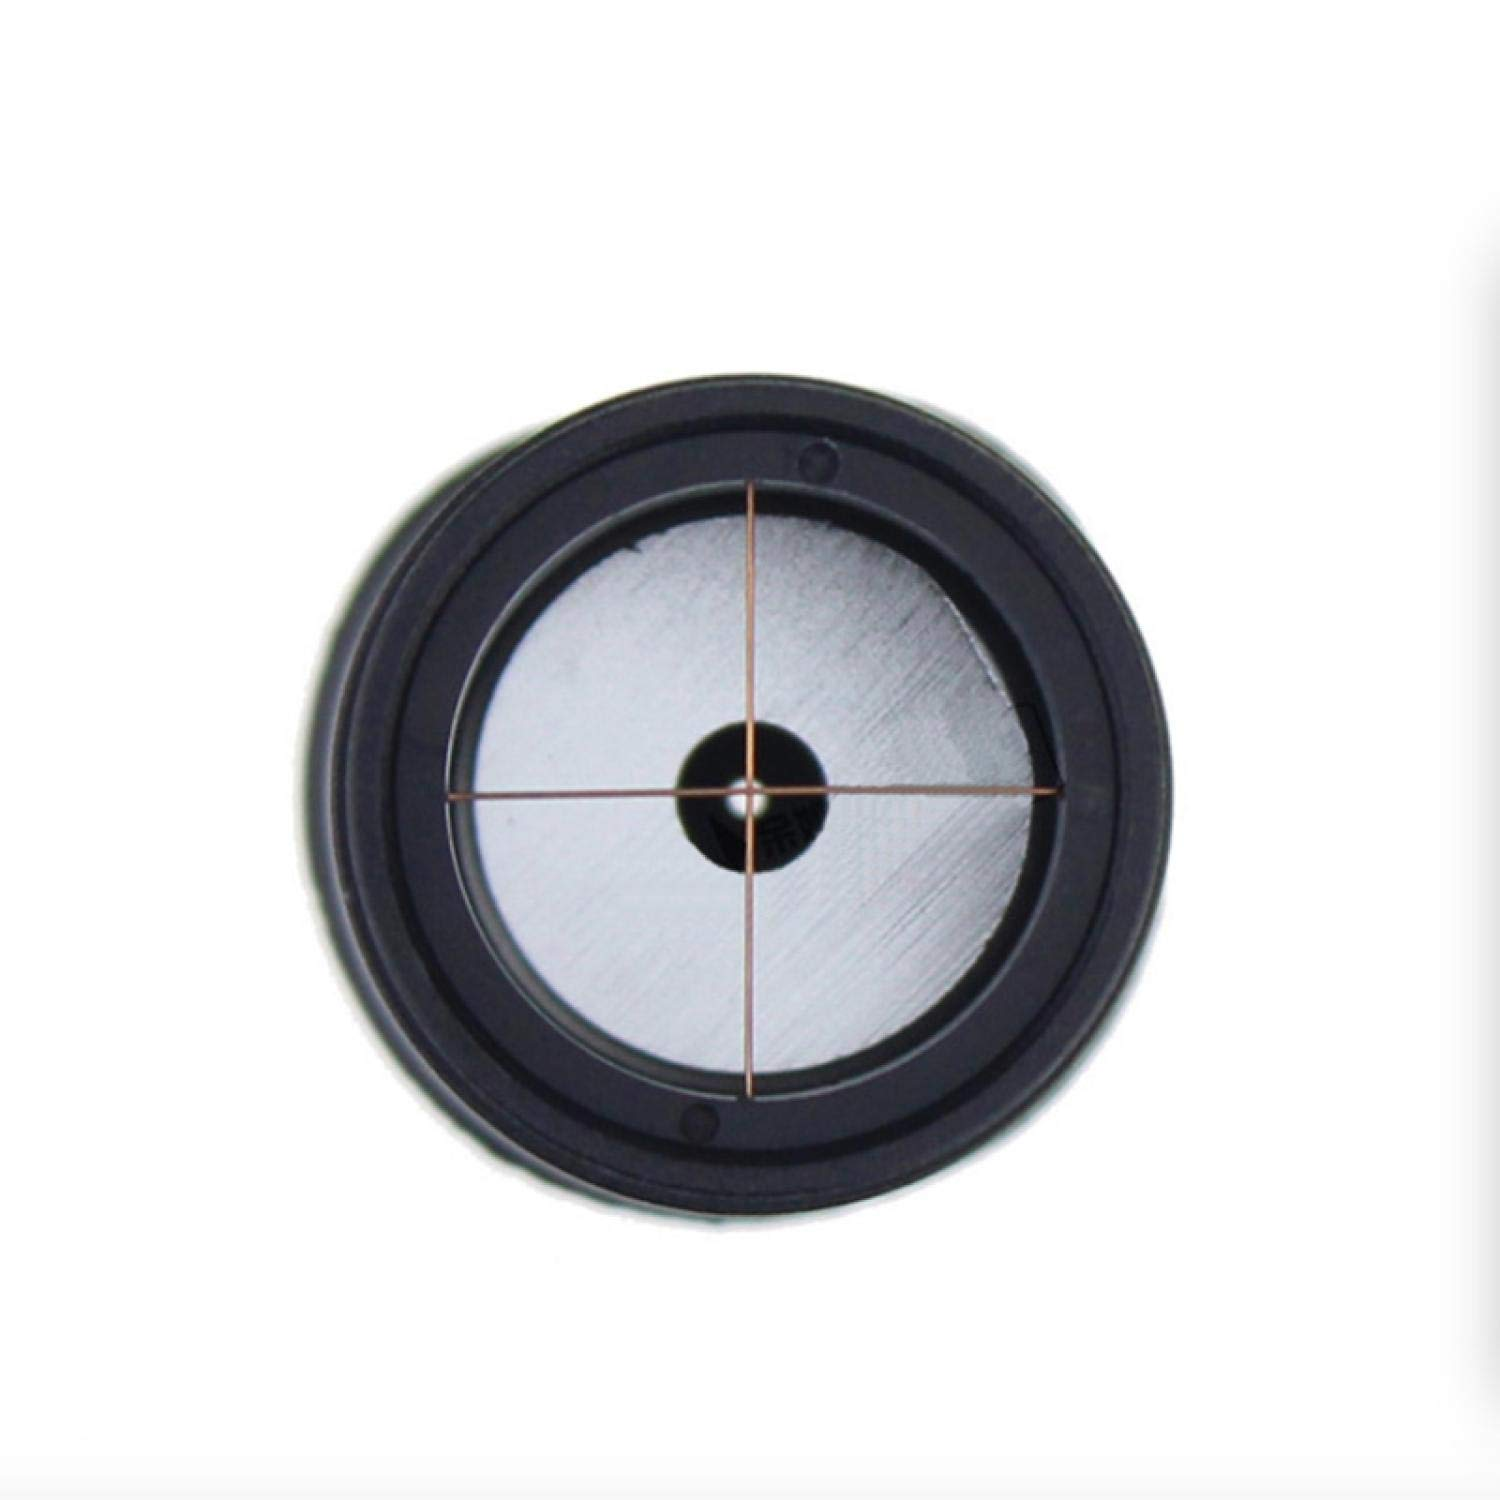 Metal Structure 1.25 Cheshire Collimating Eyepiece for Newtonian Refractor Telescopes